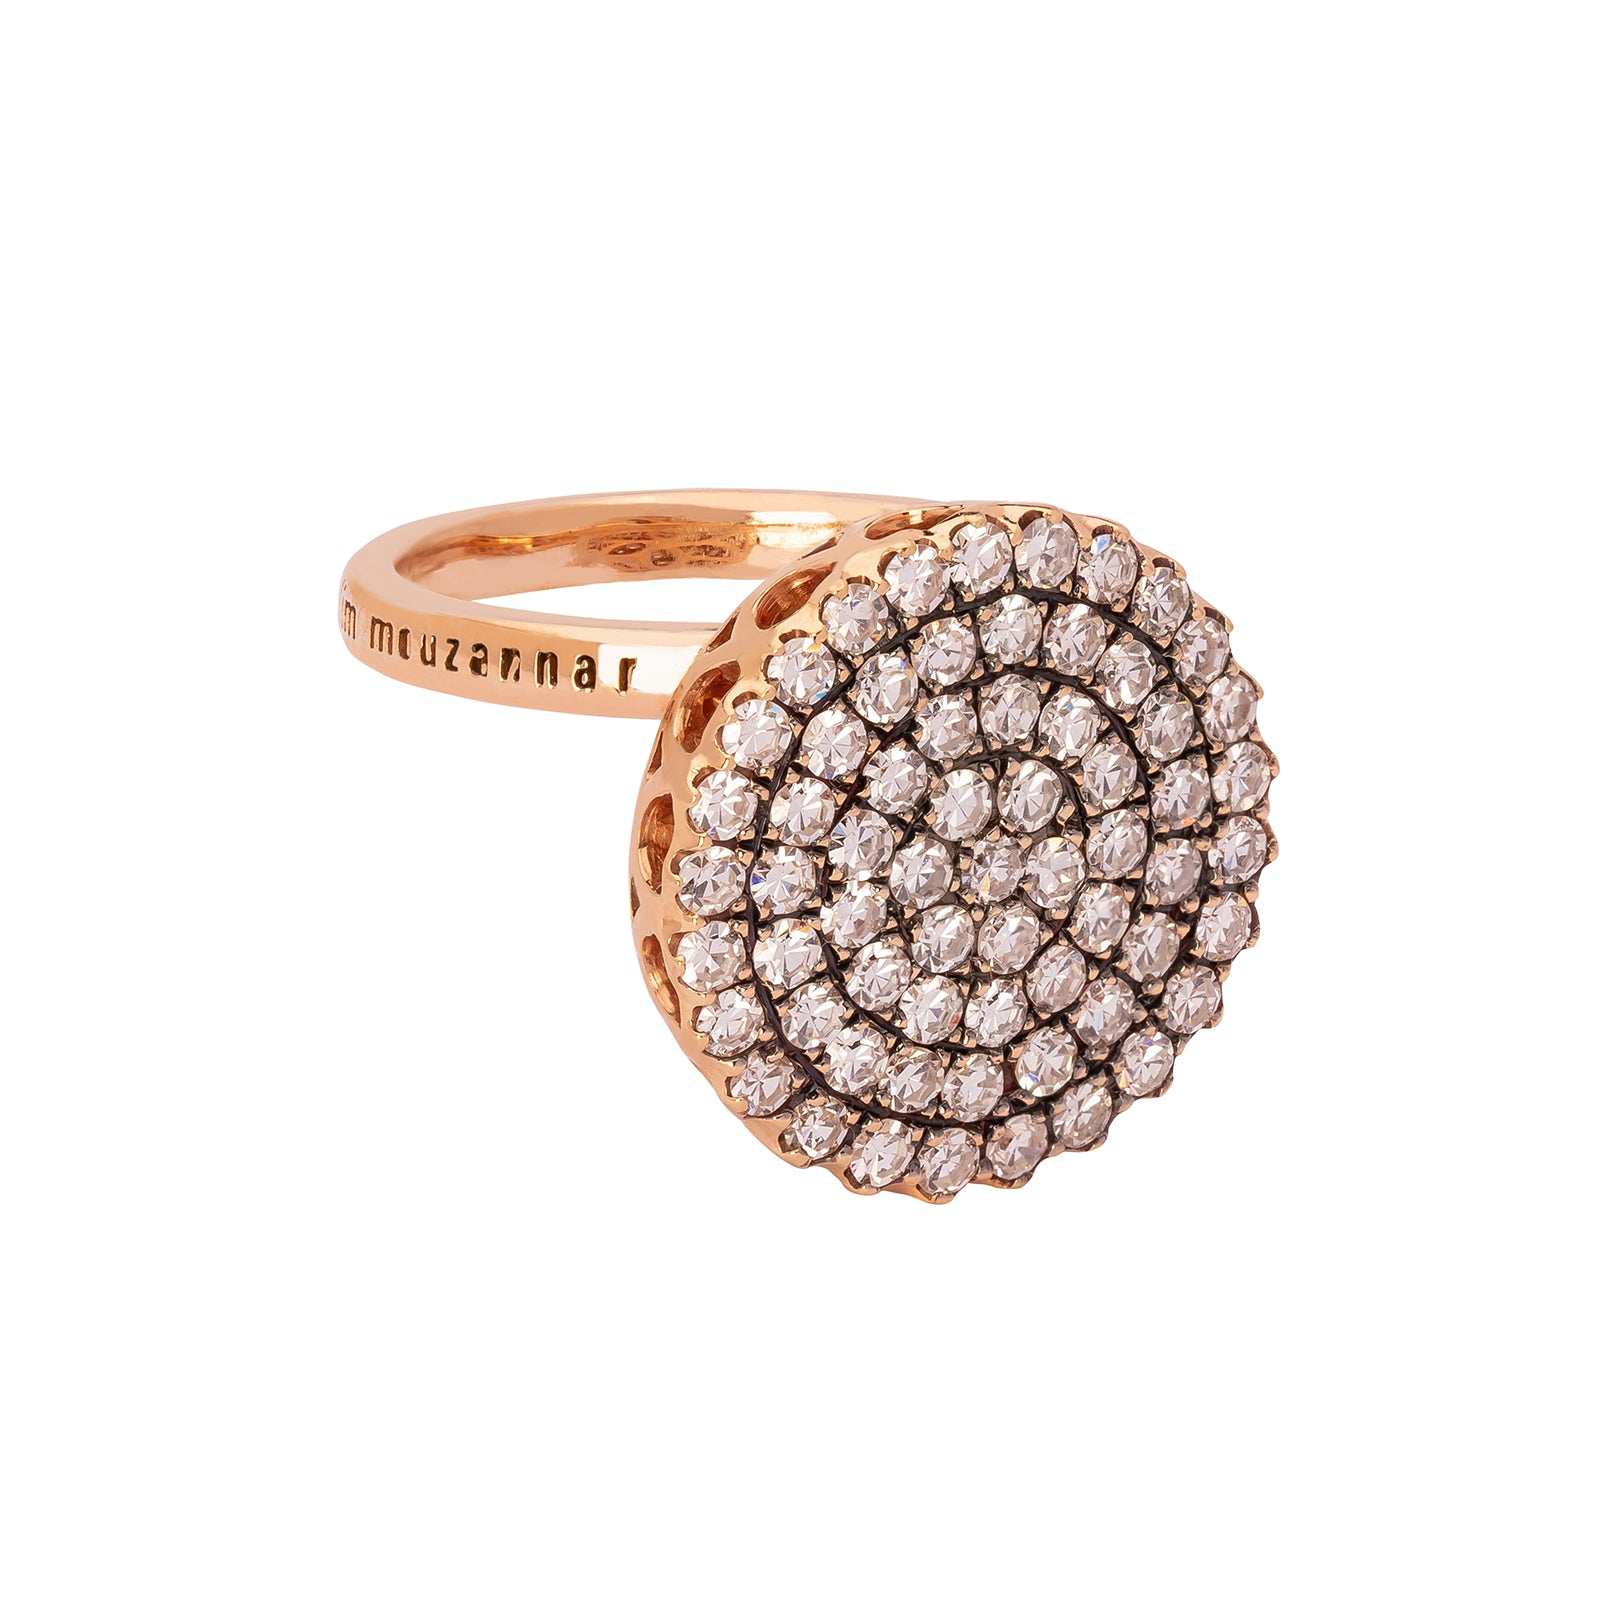 Selim Mouzannar Beruit Basic Ring - White Diamonds Large - Rings - Broken English Jewelry